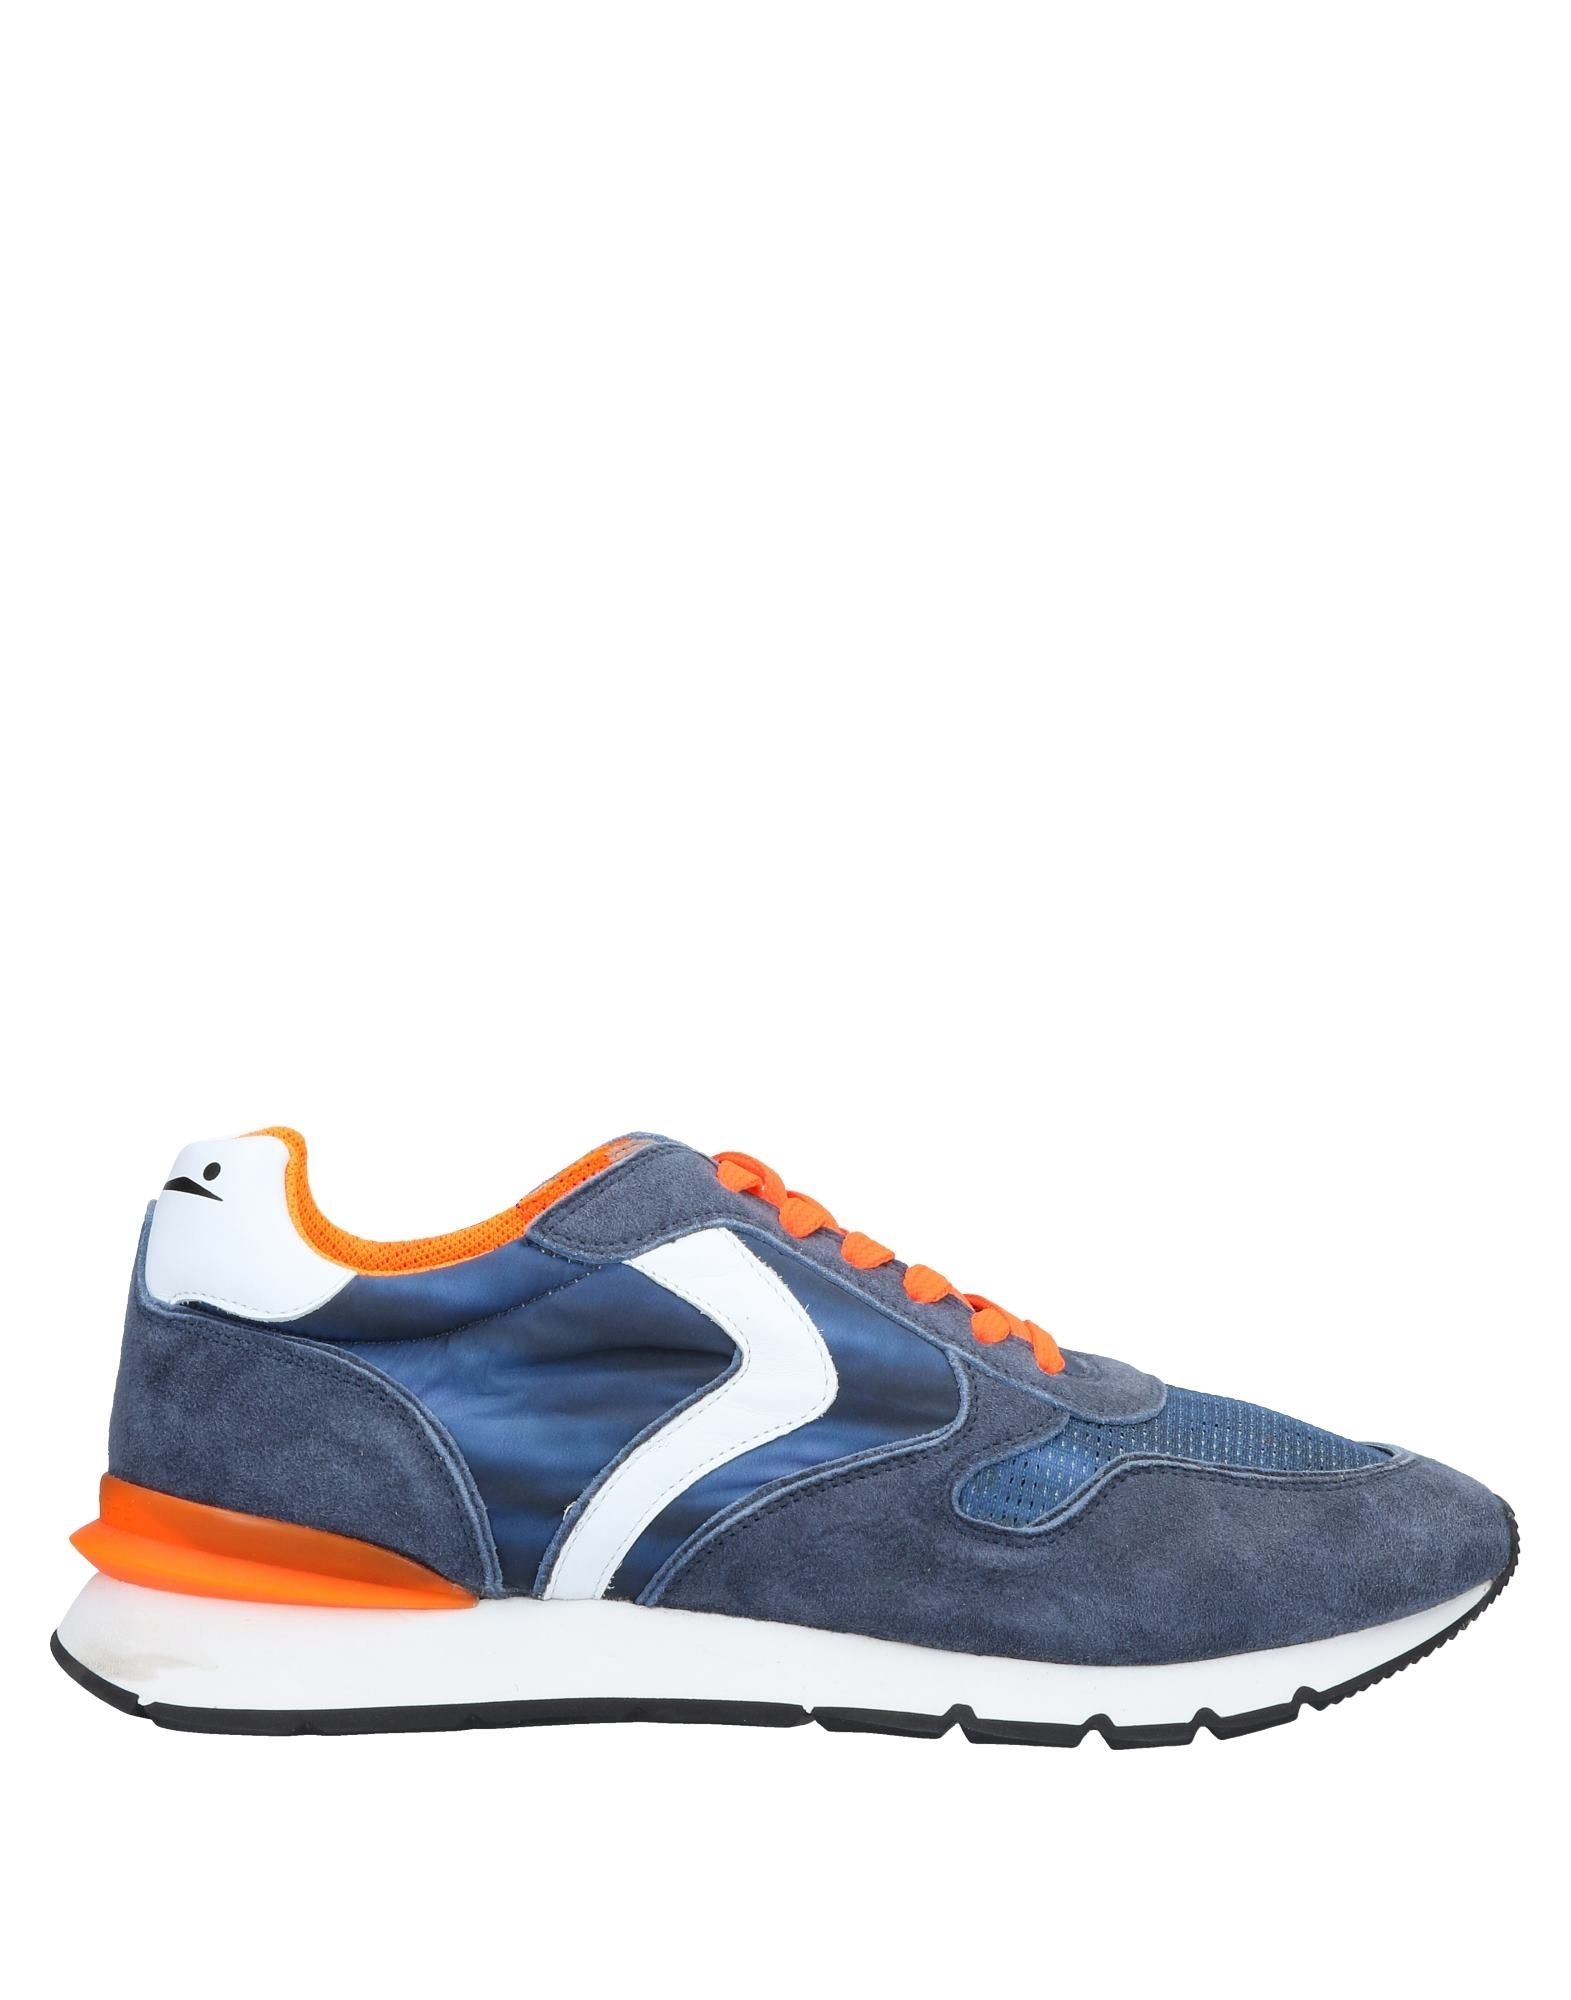 Voile Blanche Sneakers - Men Voile Blanche Australia Sneakers online on  Australia Blanche - 11566474QQ 813451